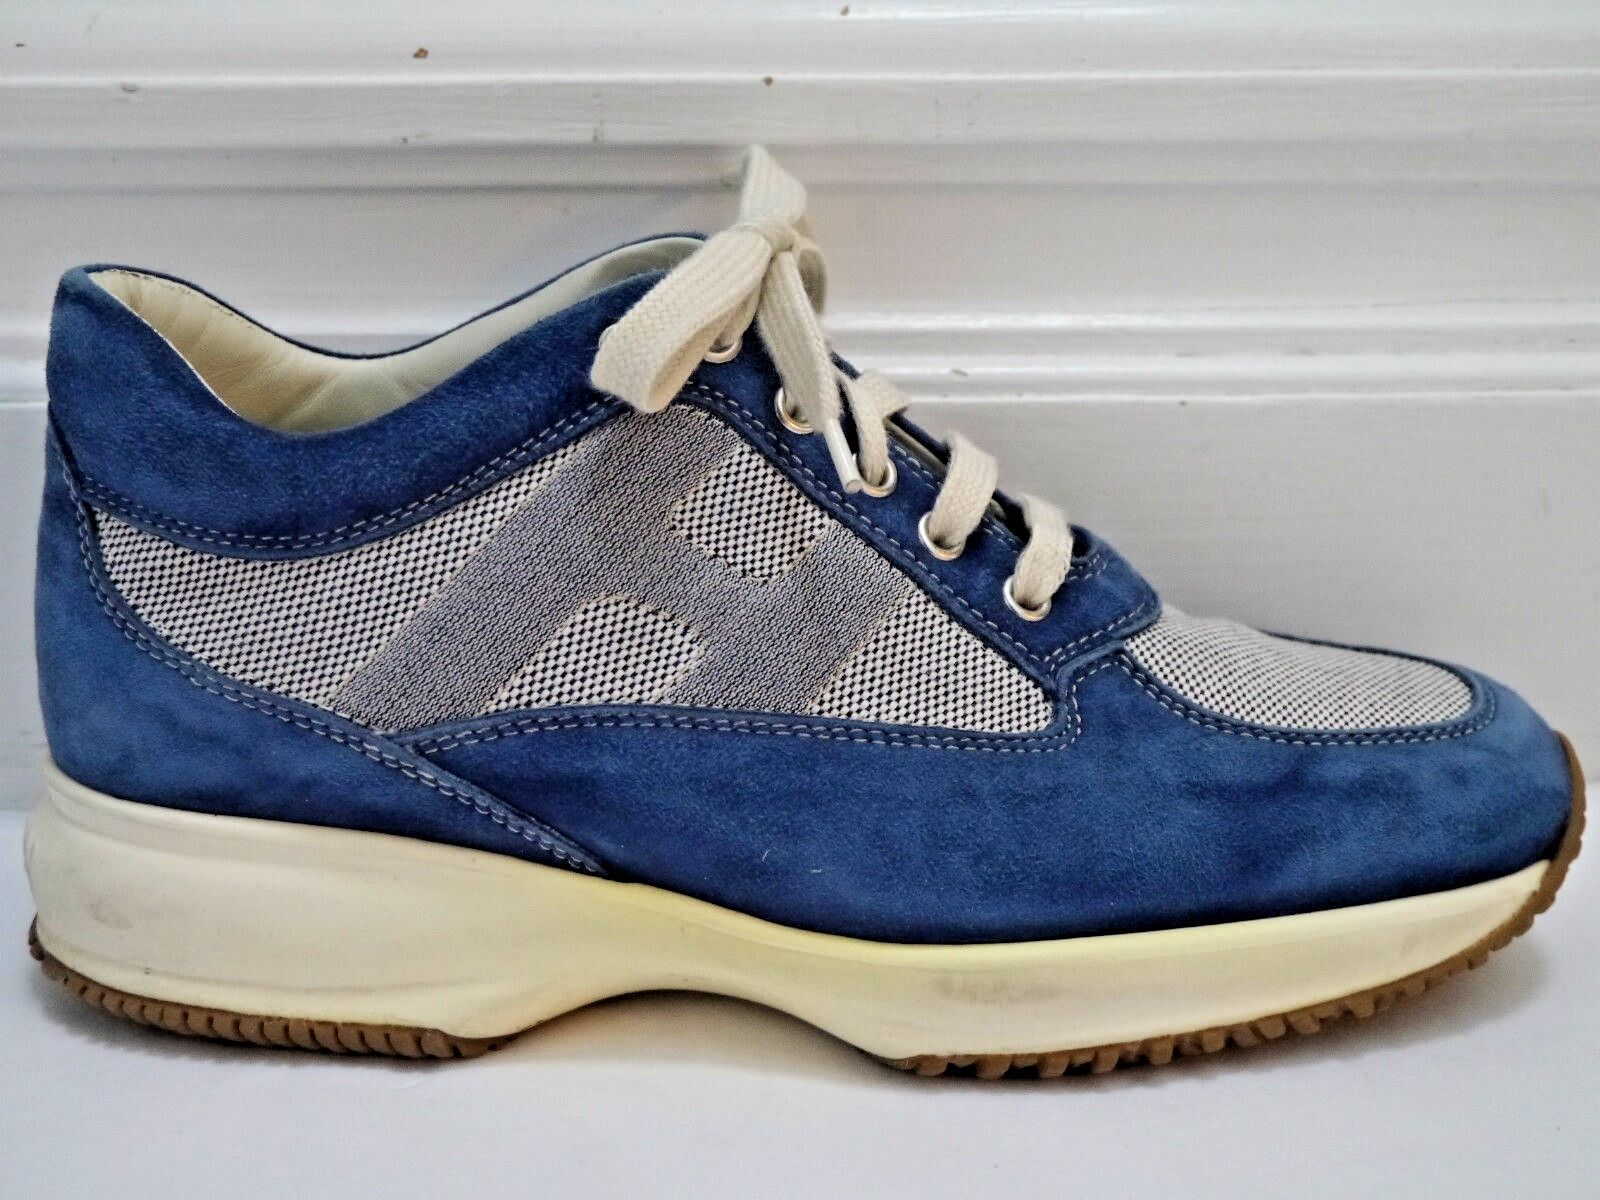 HOGAN Interactive bluee suede and canvas sneakers athletic style shoes size 8.5